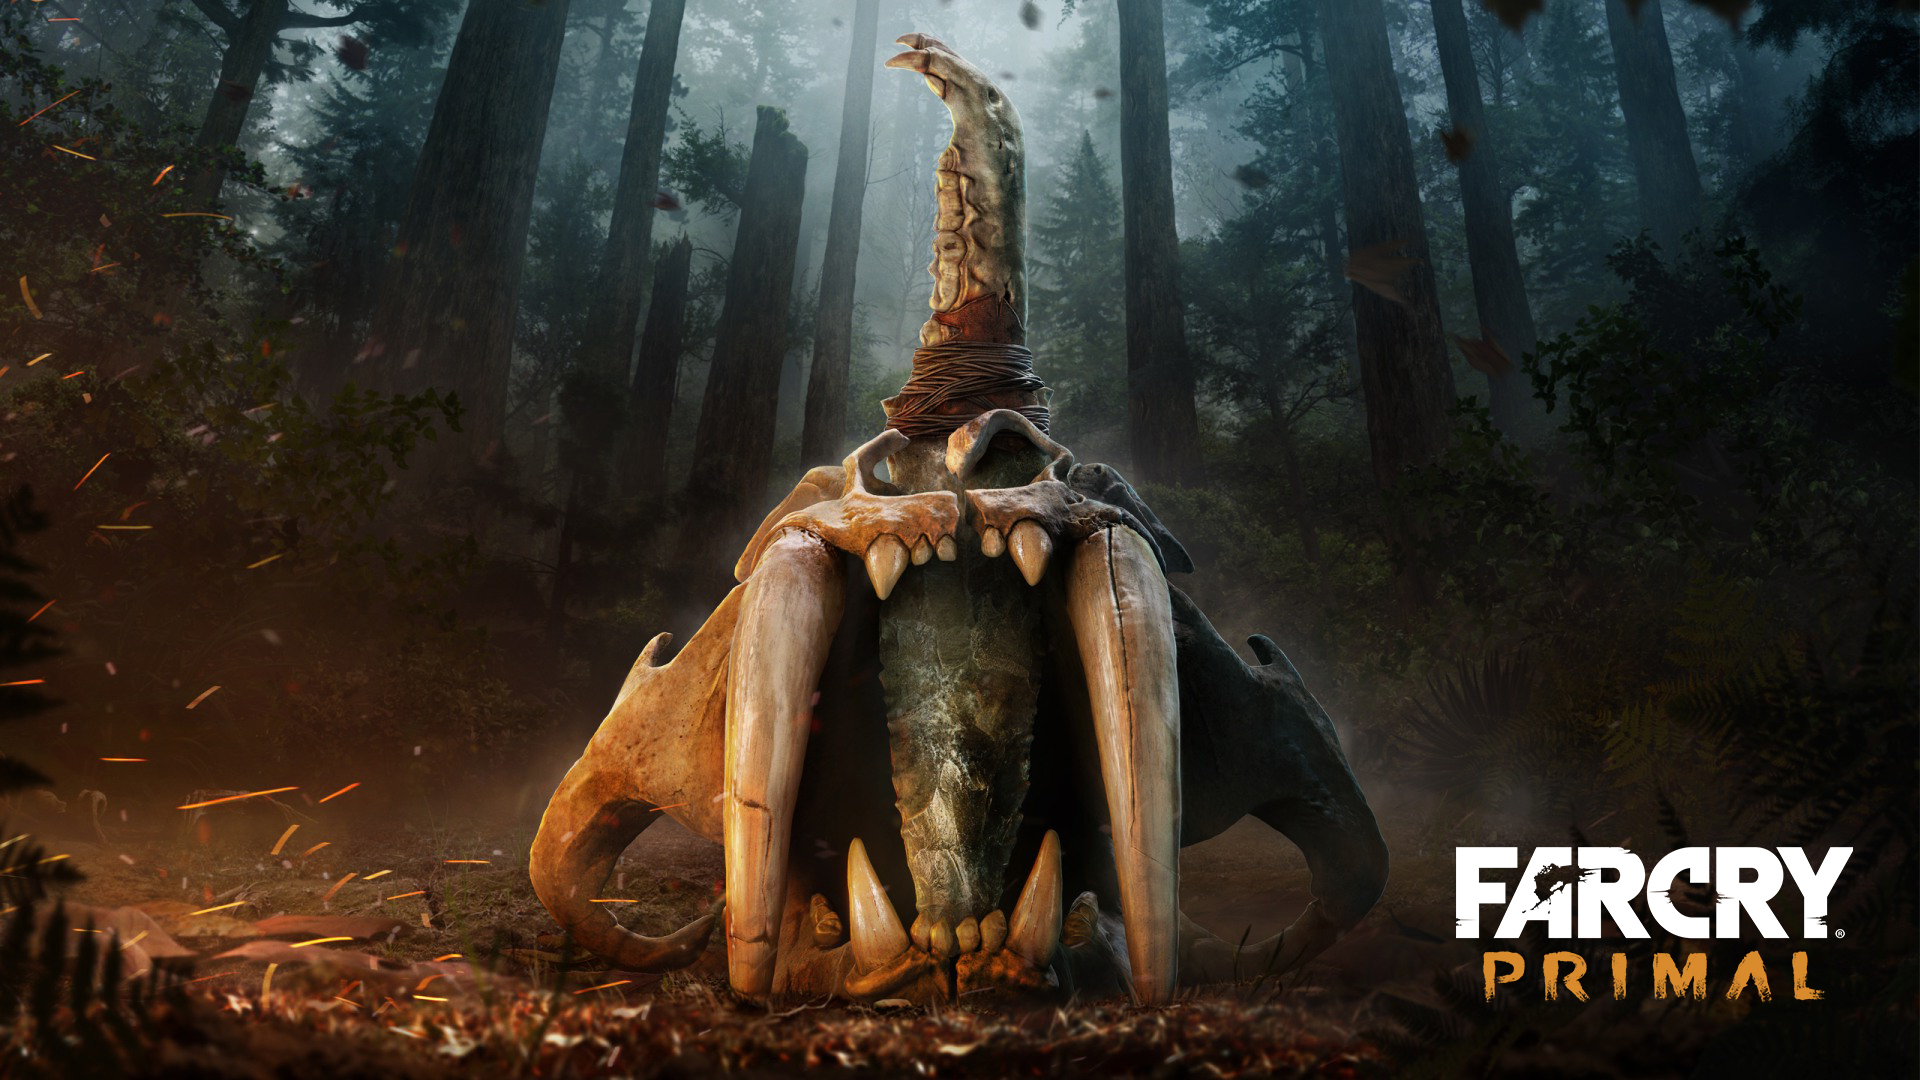 Far Cry Primal Wallpaper: Far Cry Primal Wallpapers HD Free Download